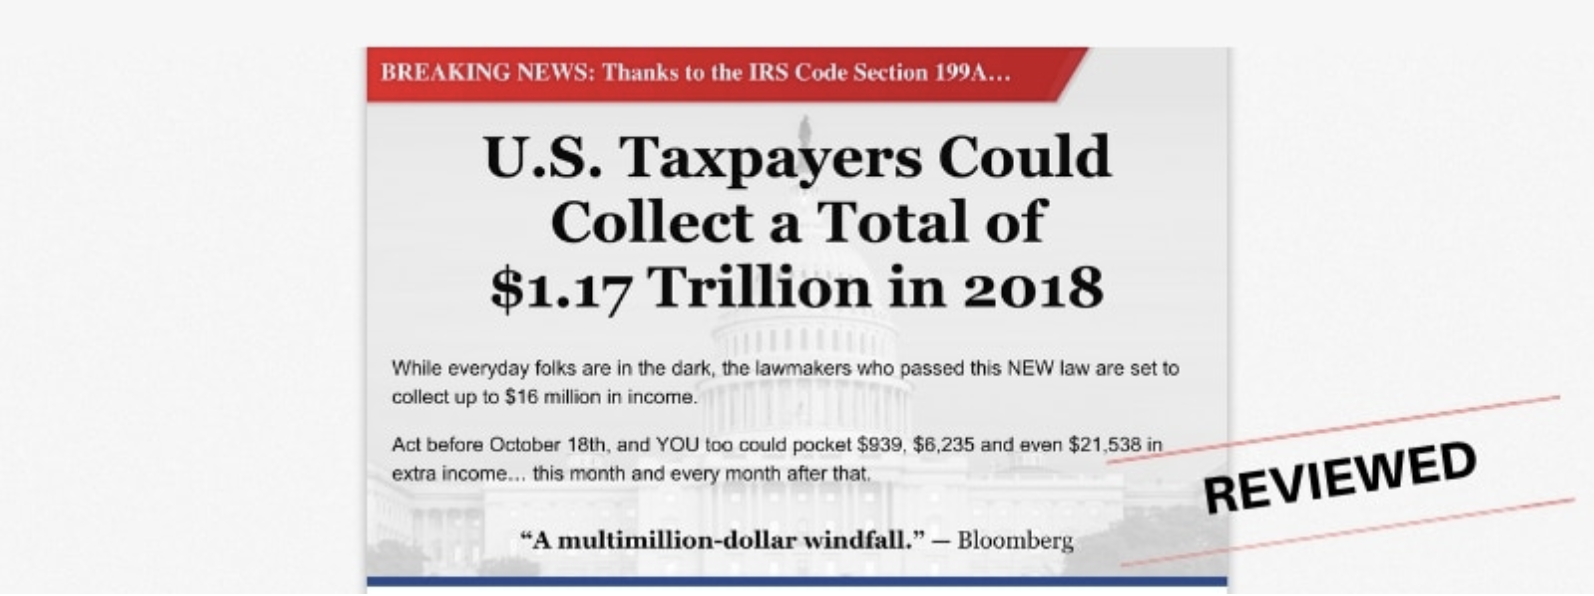 Congressional Checks Review – Ugly Truth Revealed!